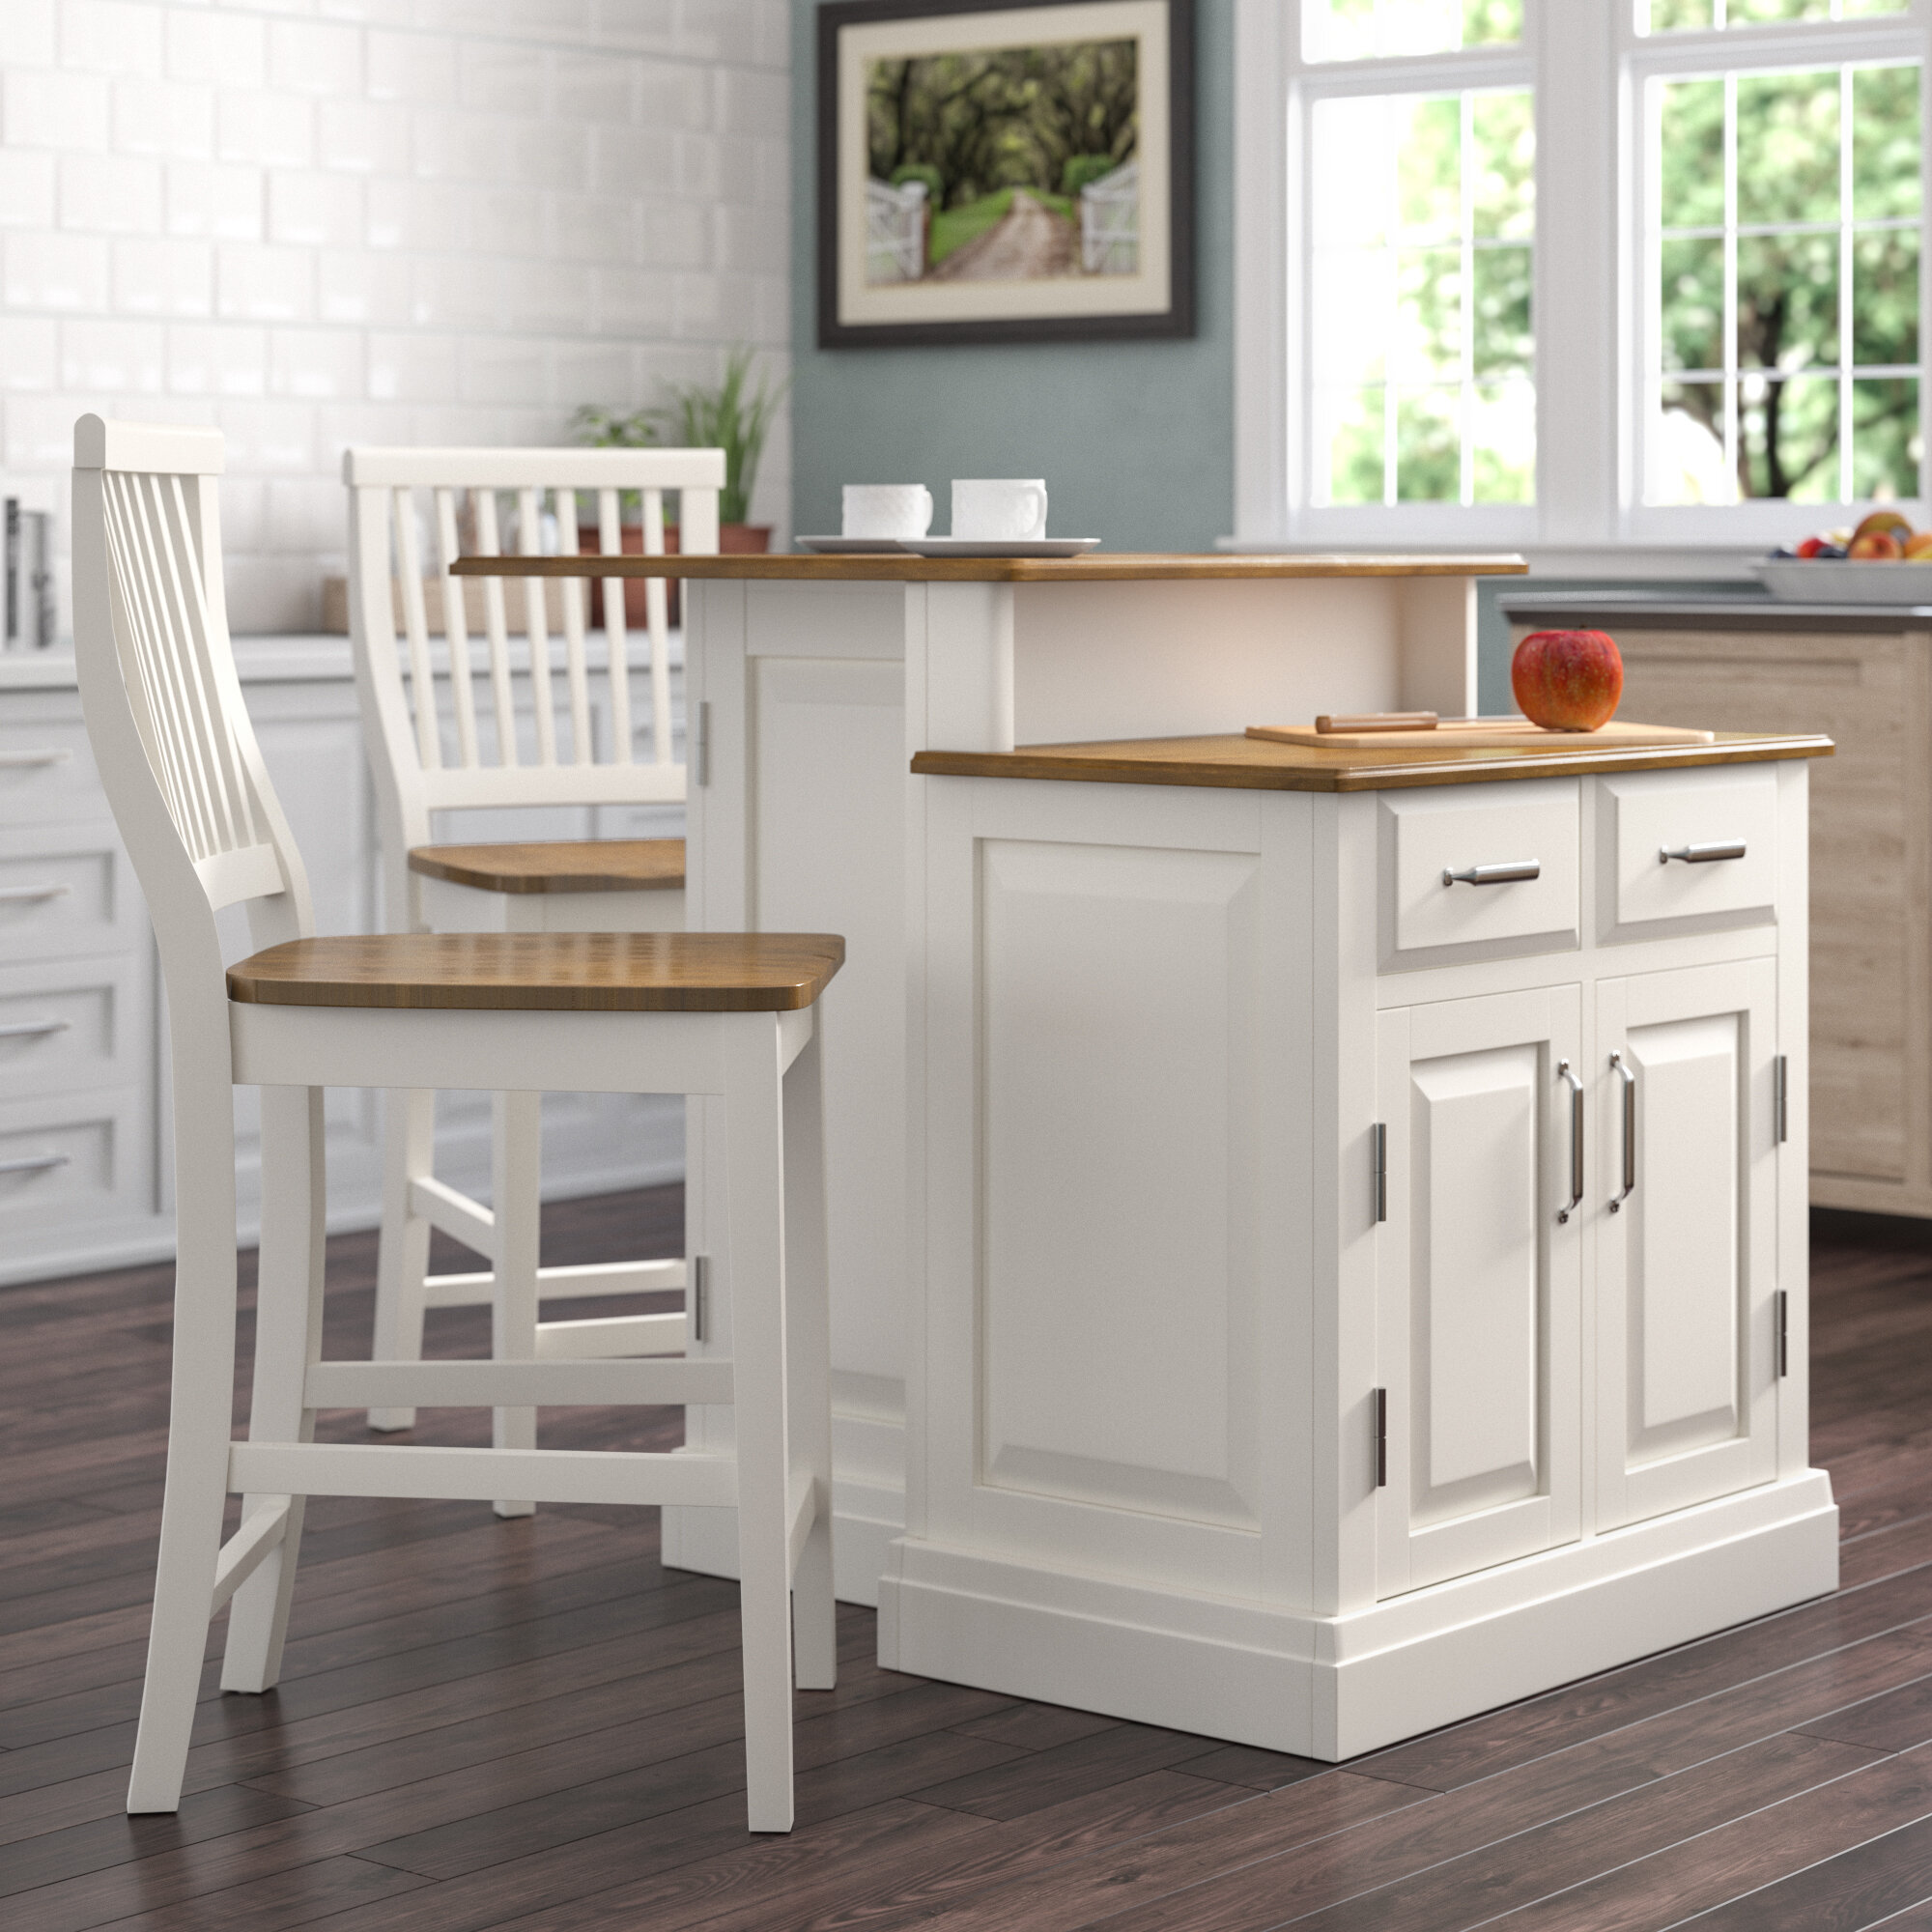 darby home co susana 3 piece kitchen island set with wood top rh wayfair com white kitchen island wood top hardiman kitchen island with wood top